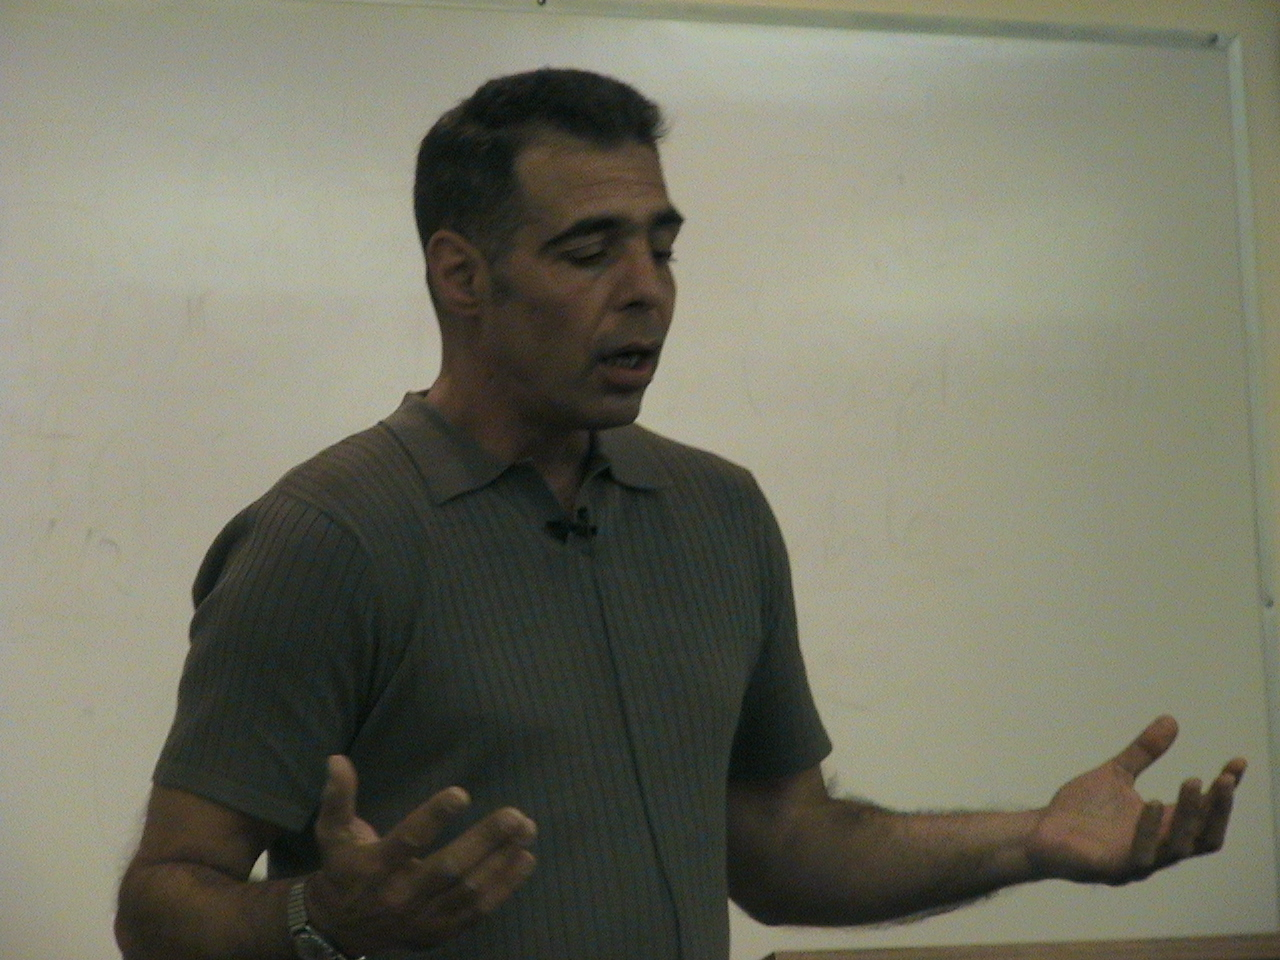 Justin Raimondo of Anti-War.com speaking at Whittier Law School, in Costa Mesa Ca. 031505